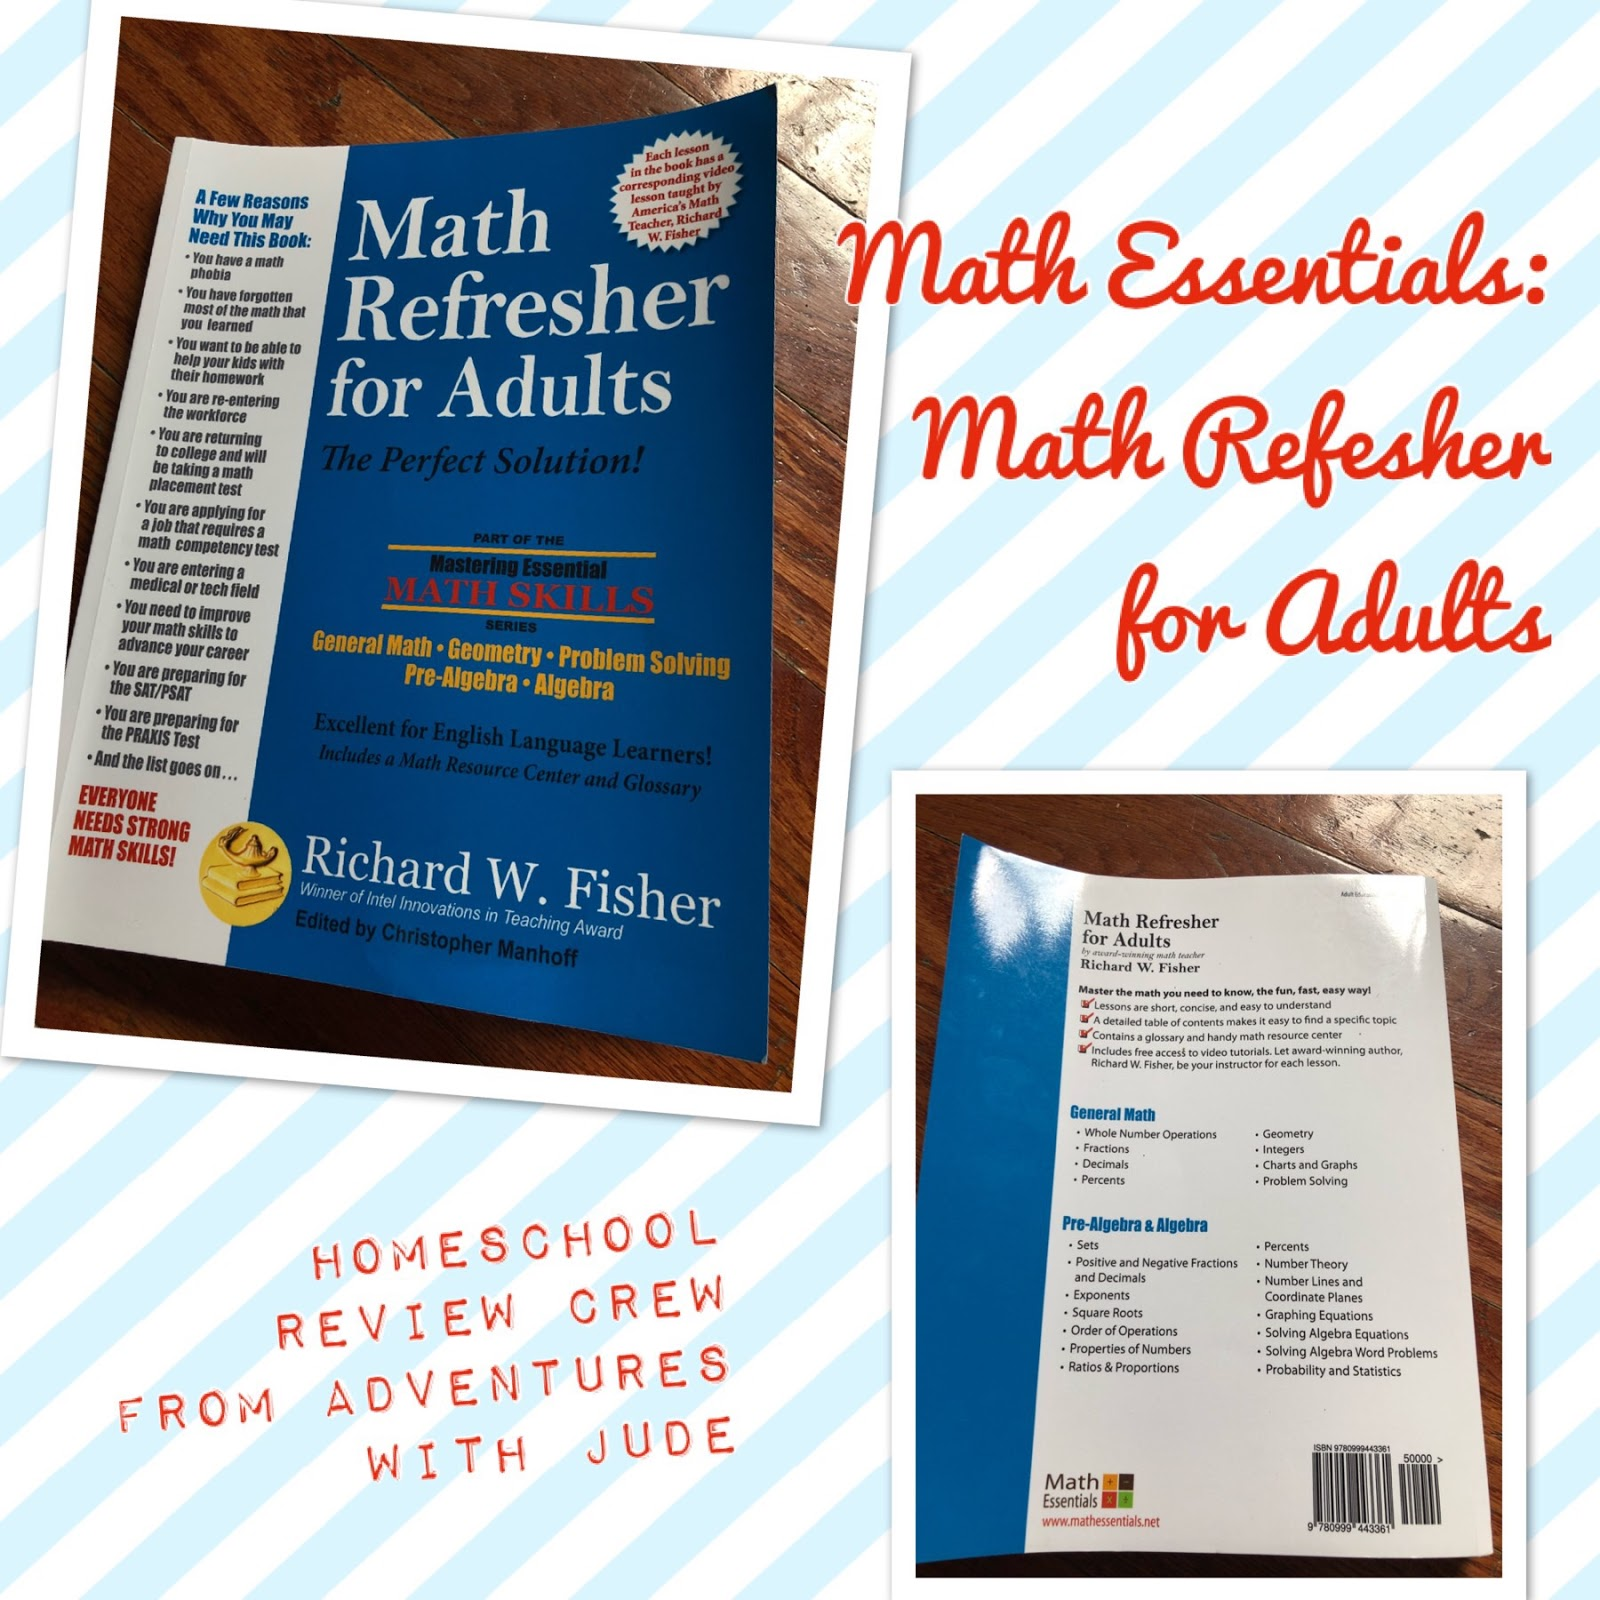 Adventures with Jude: Math Essentials: Math Refresher for Adults ...